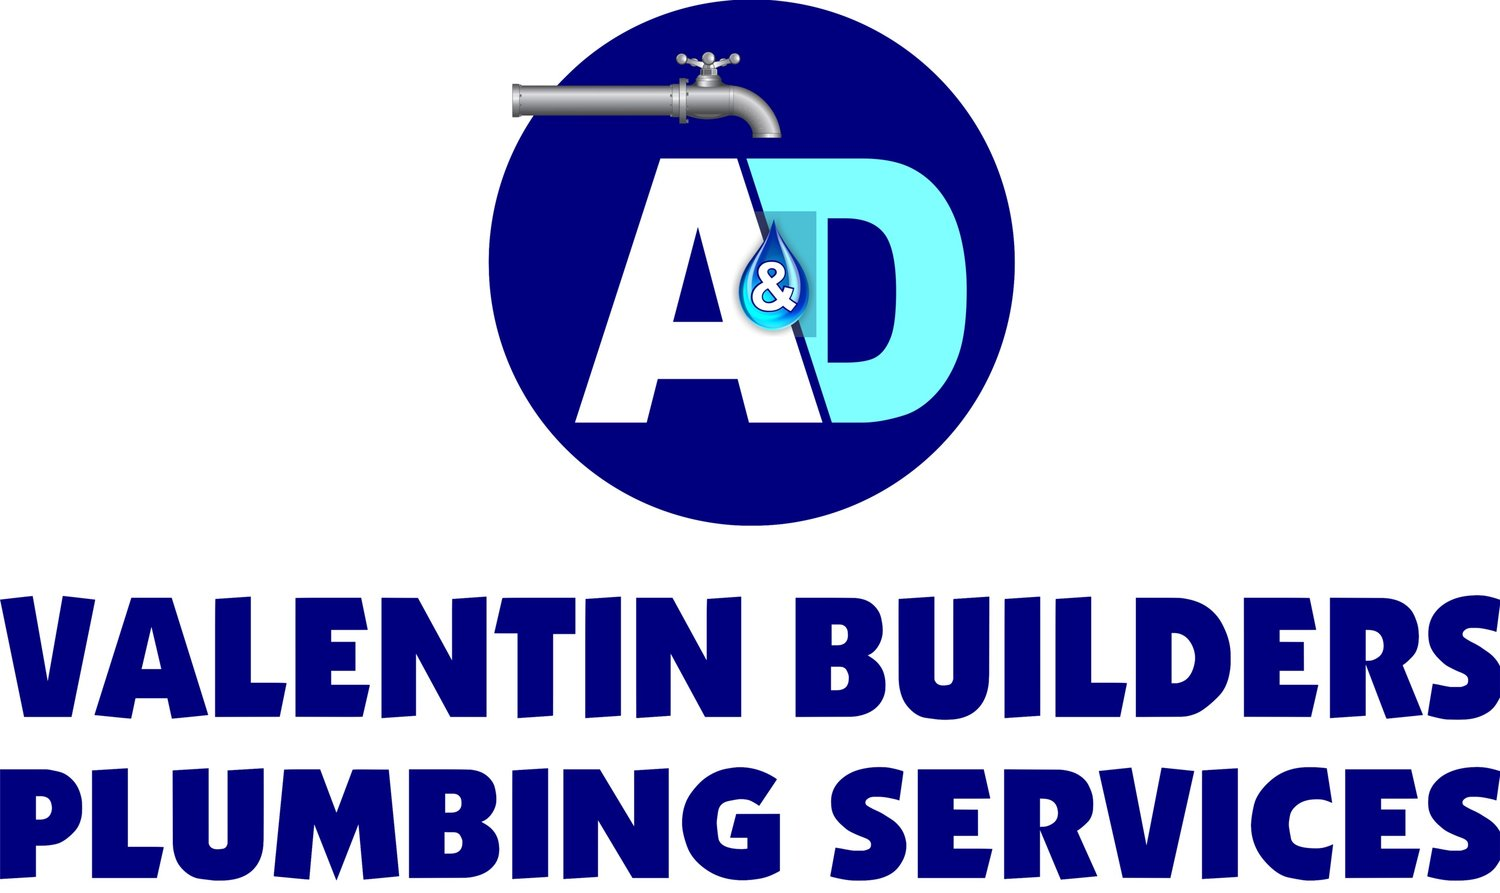 Palm Beach County Plumbing - Valentin Builders